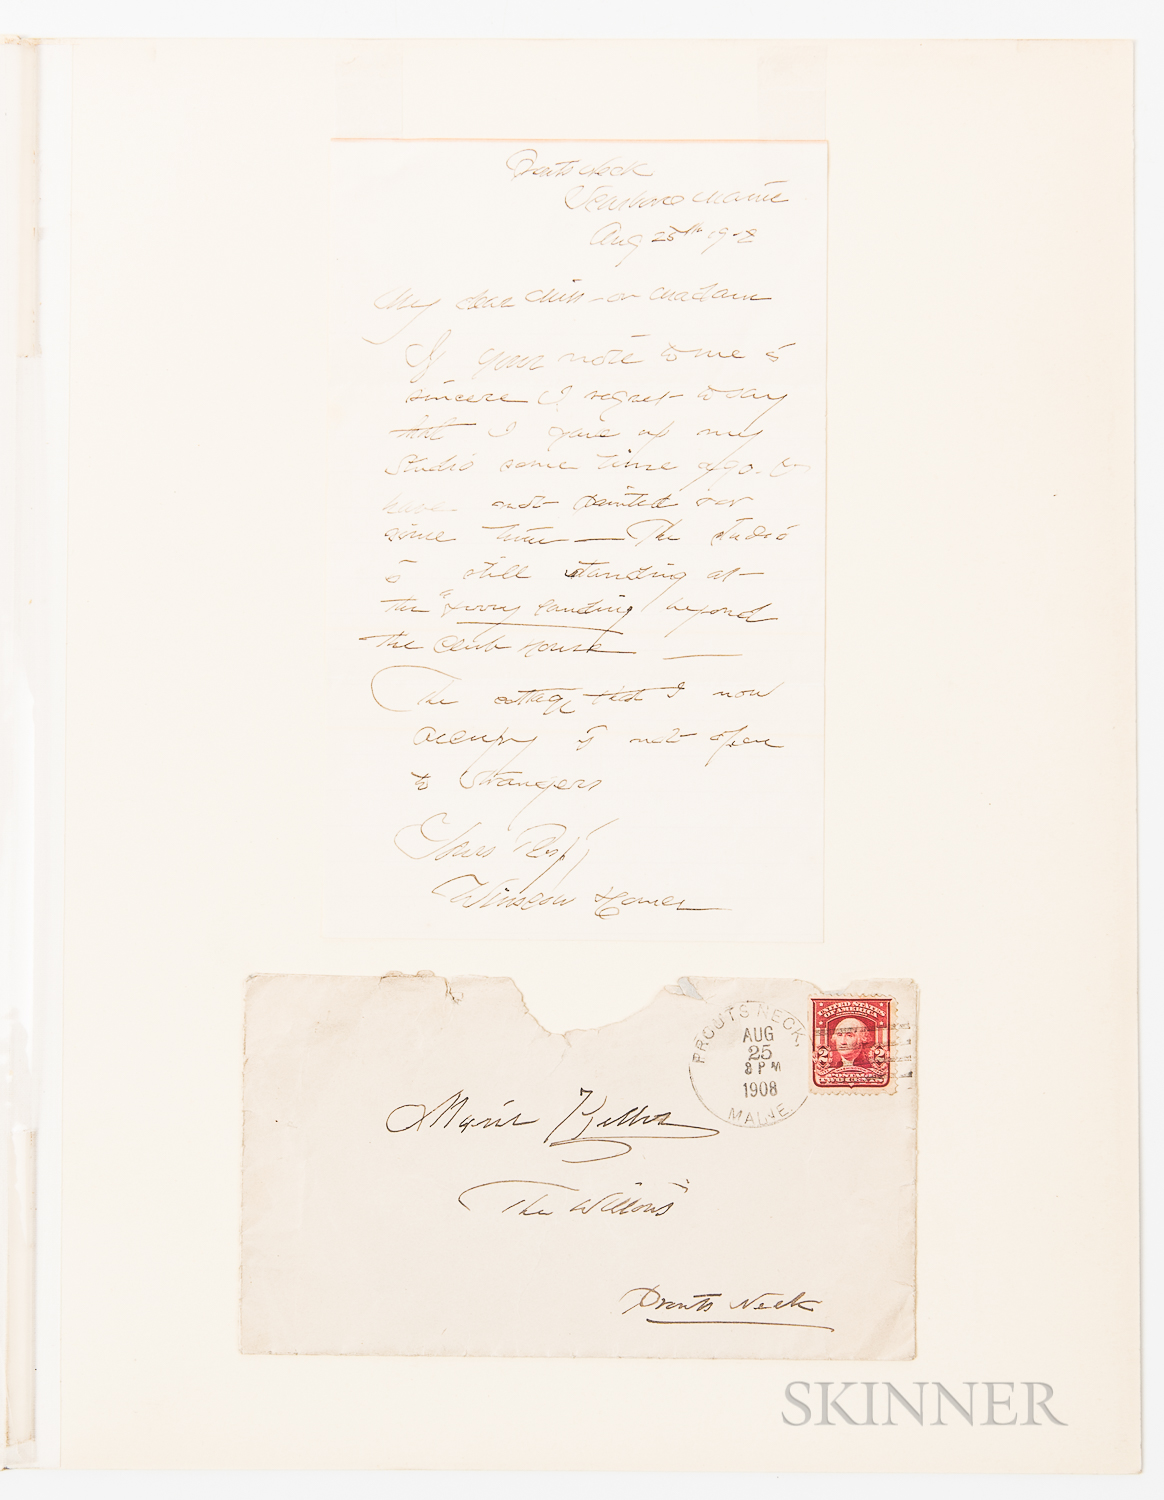 Homer, Winslow (1836-1910) Autograph Letter Signed, Prouts Neck, Scarboro, Maine, 25 August 1908